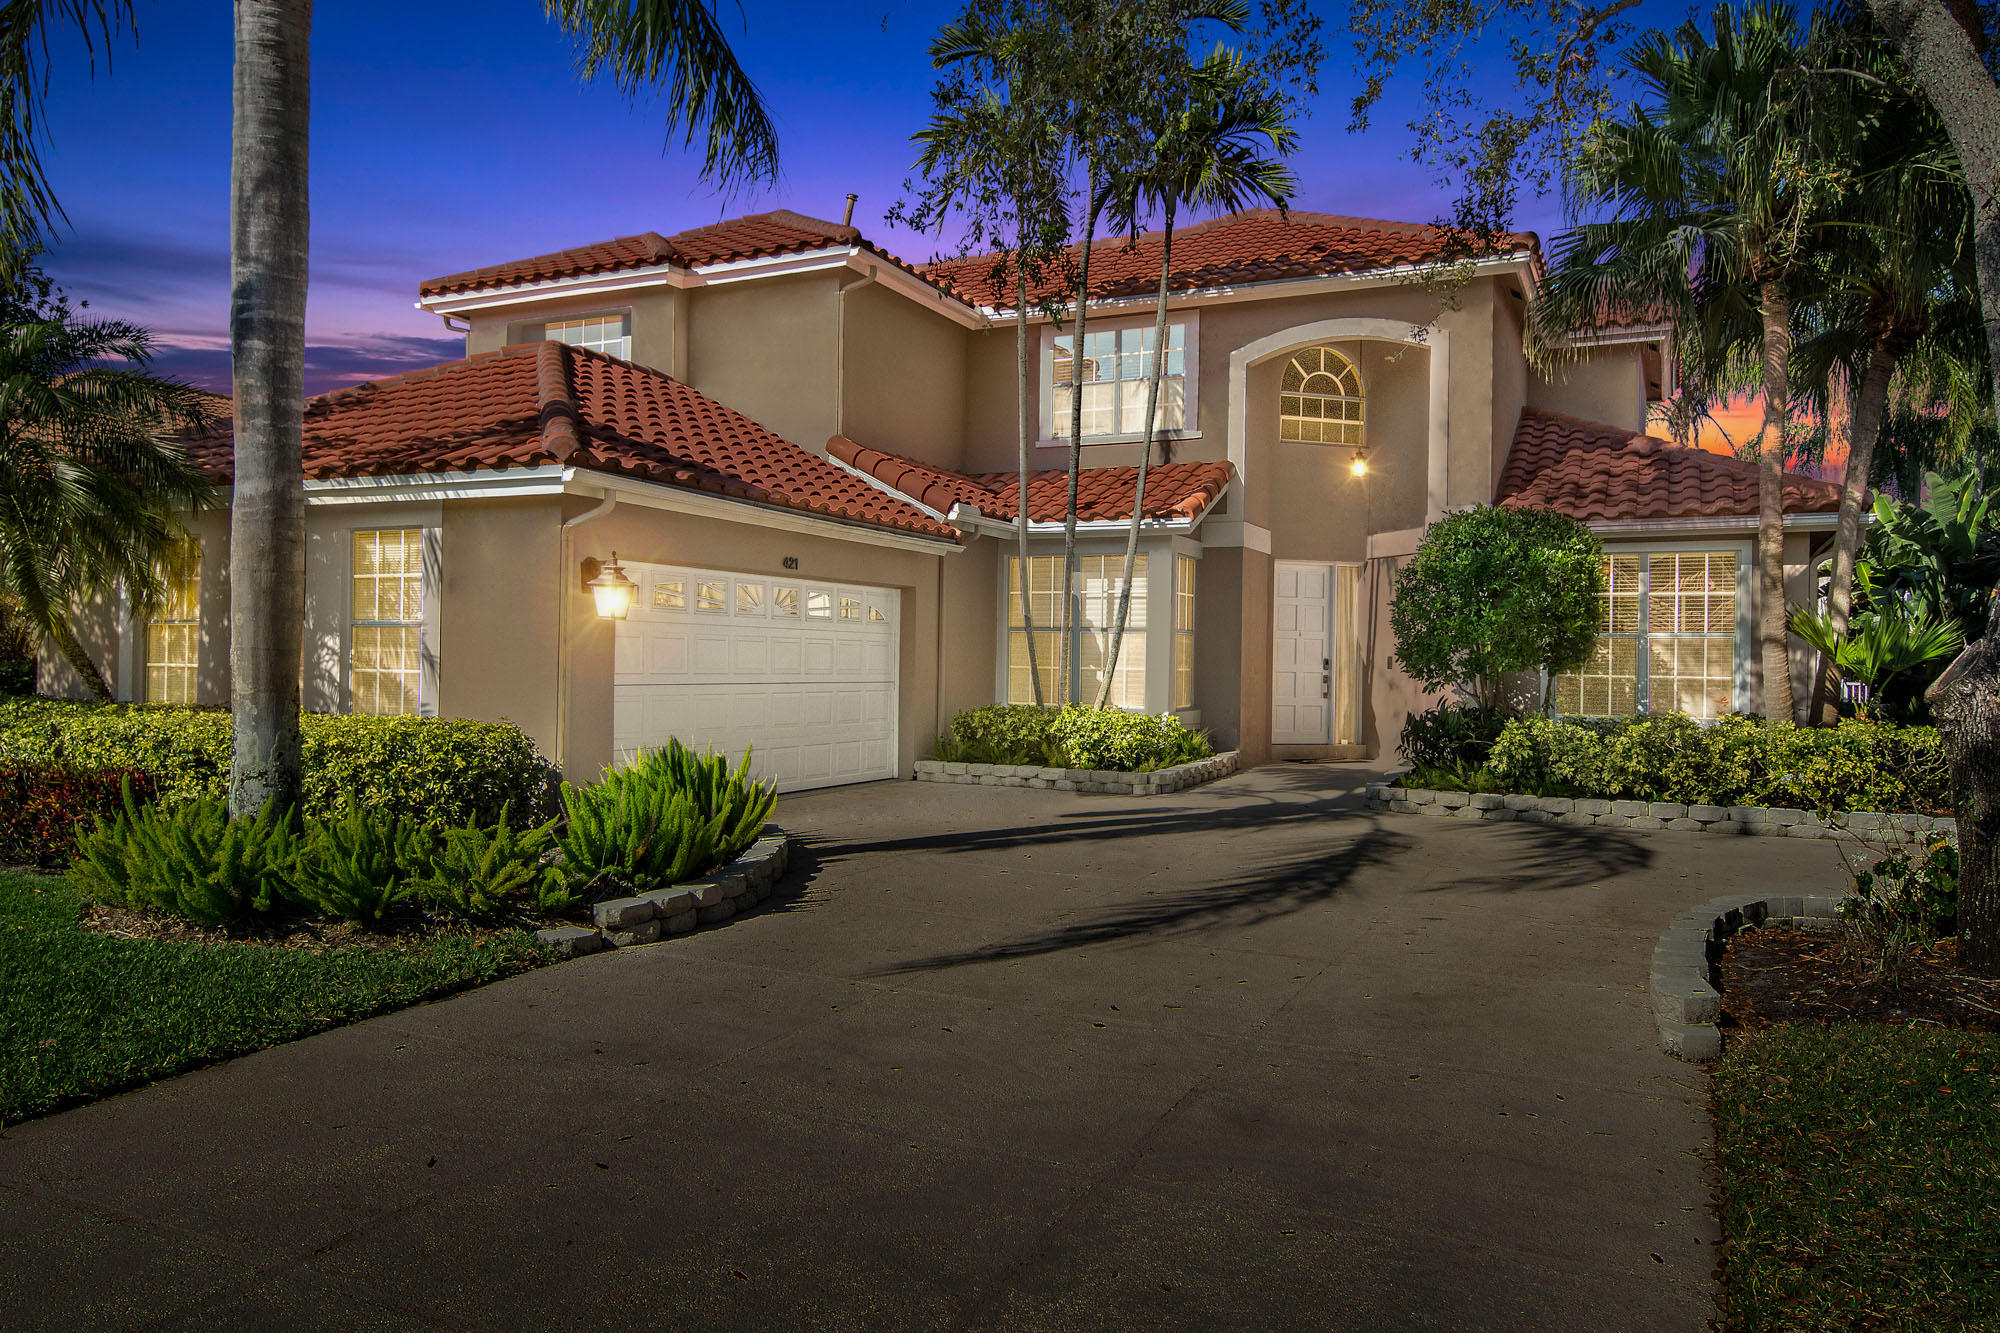 Home for sale in Eagleton Cove - Pga National Palm Beach Gardens Florida